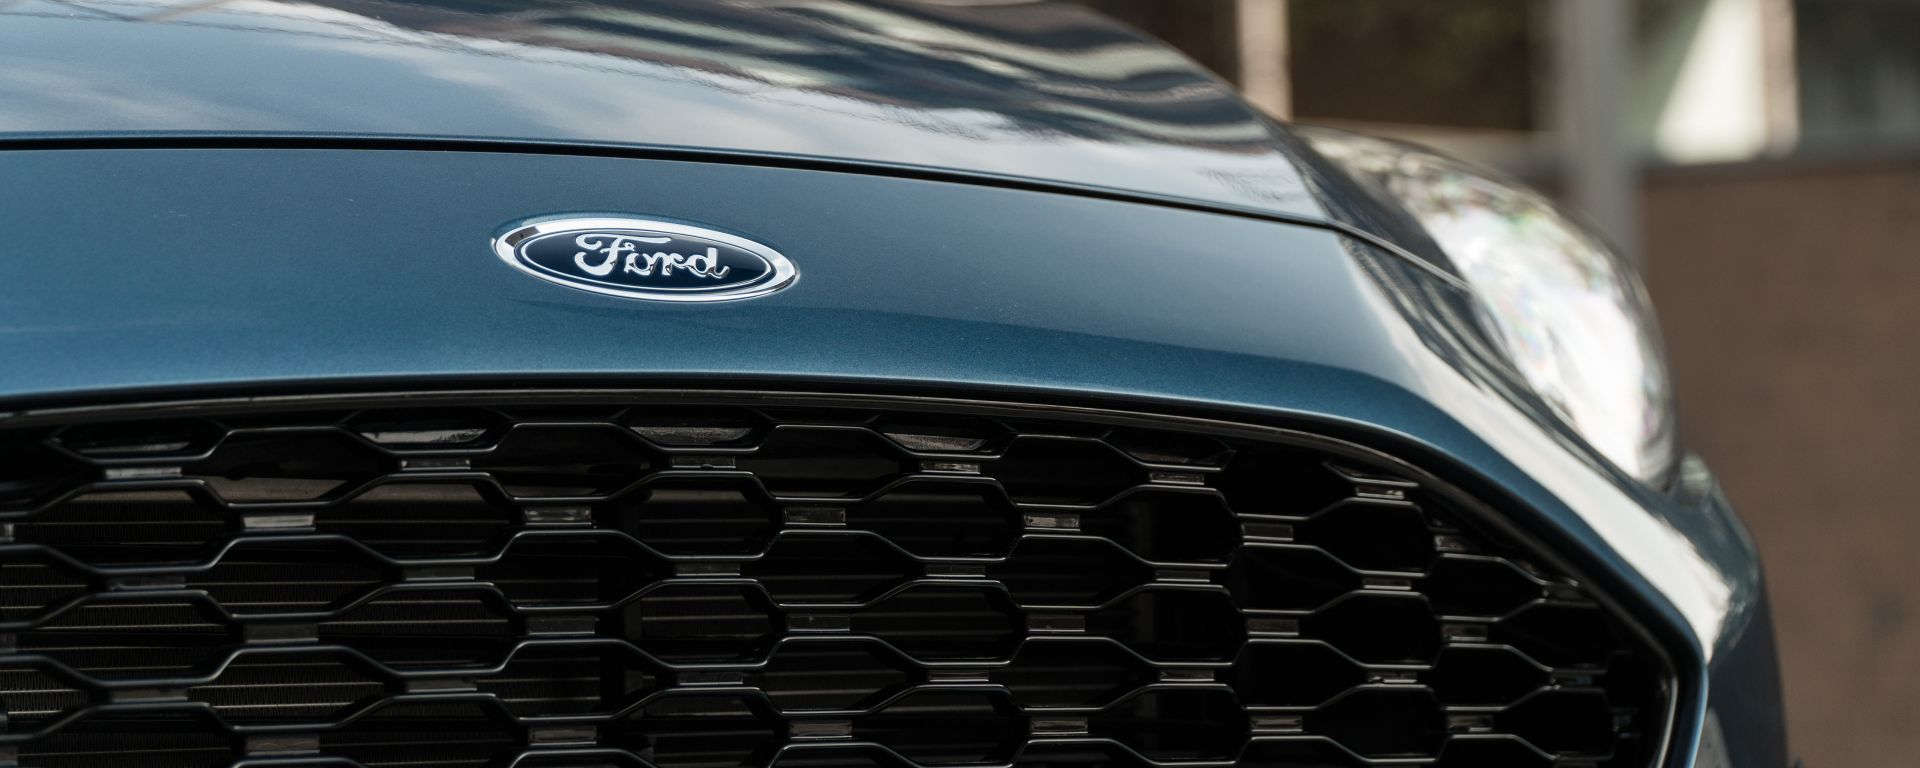 Ford Fiesta 1.0 Ecoboost Hybrid 125 CV ST-Line, l'Ovale Blu sul frontale